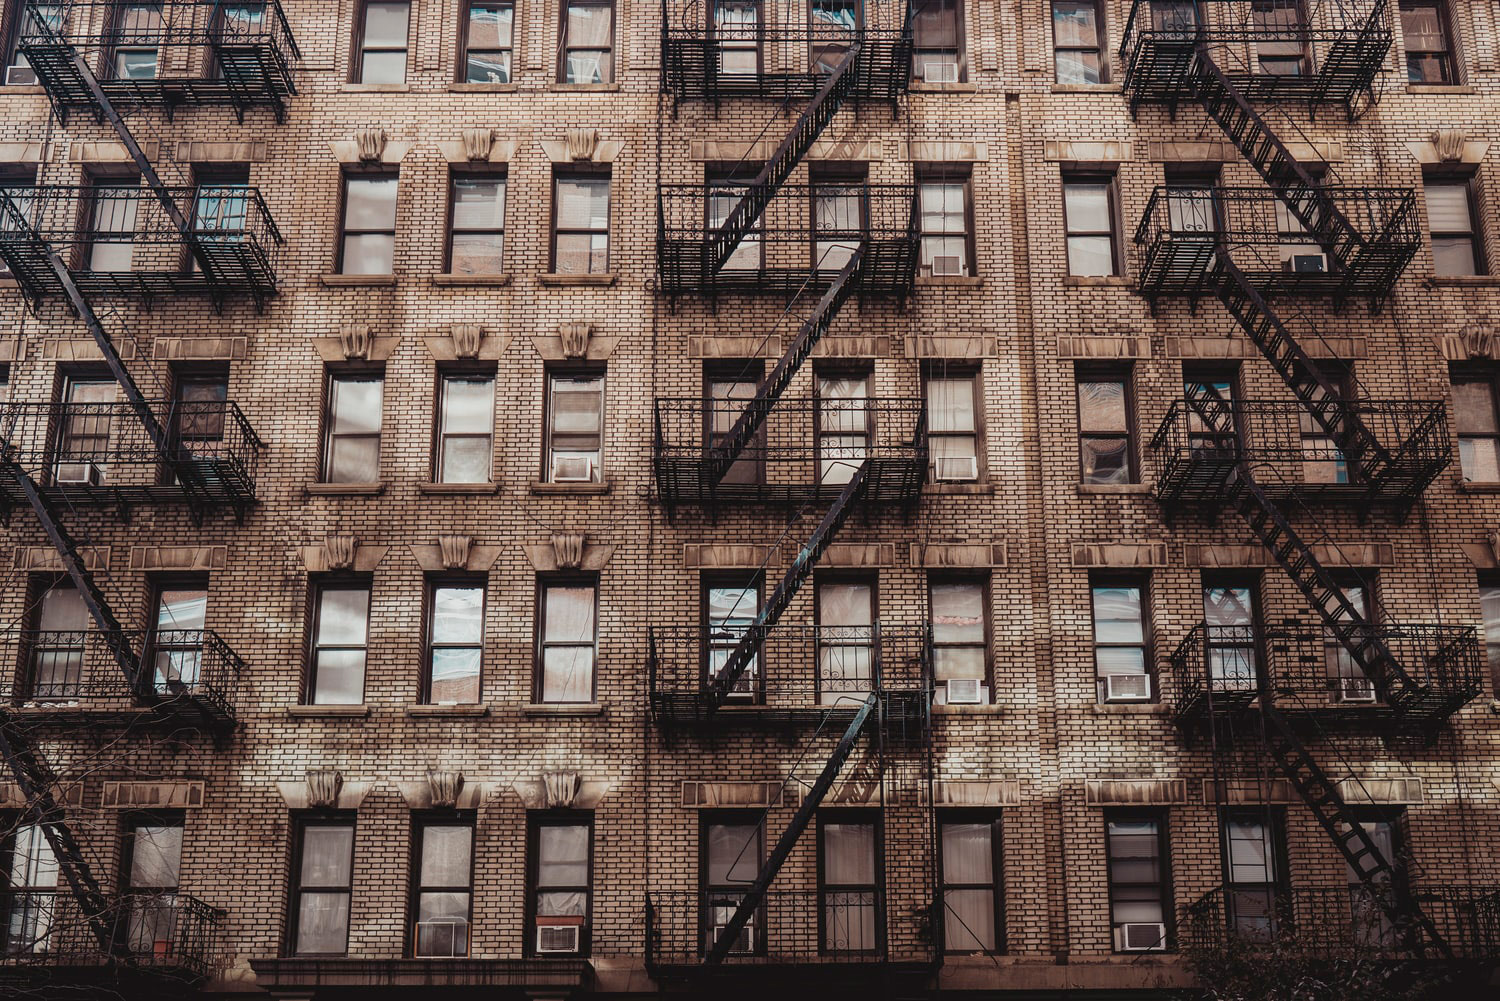 fire escapes and apartment windows